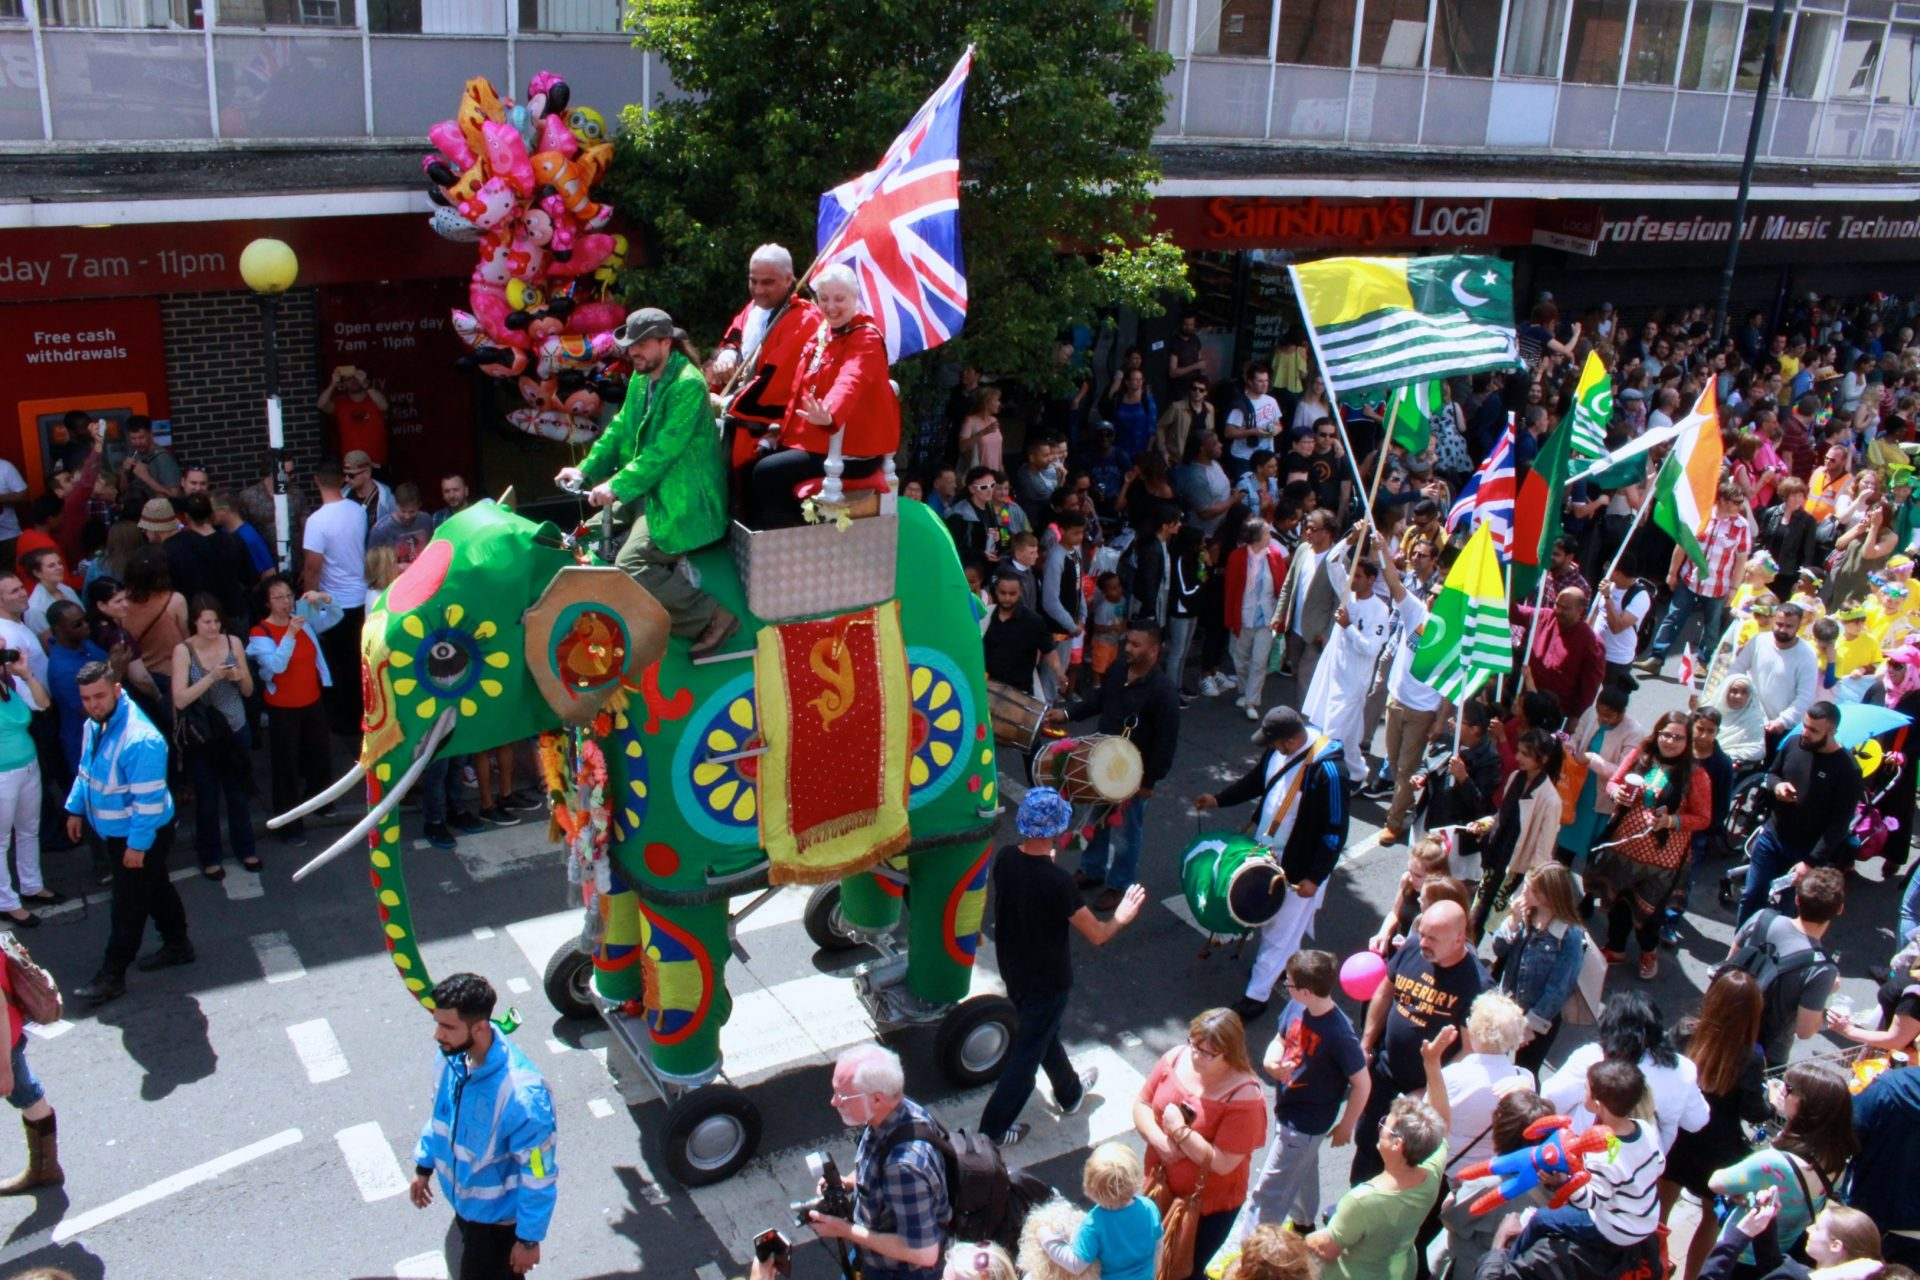 Ellephant leading the procession in 2016 photograph by Jim Robinson